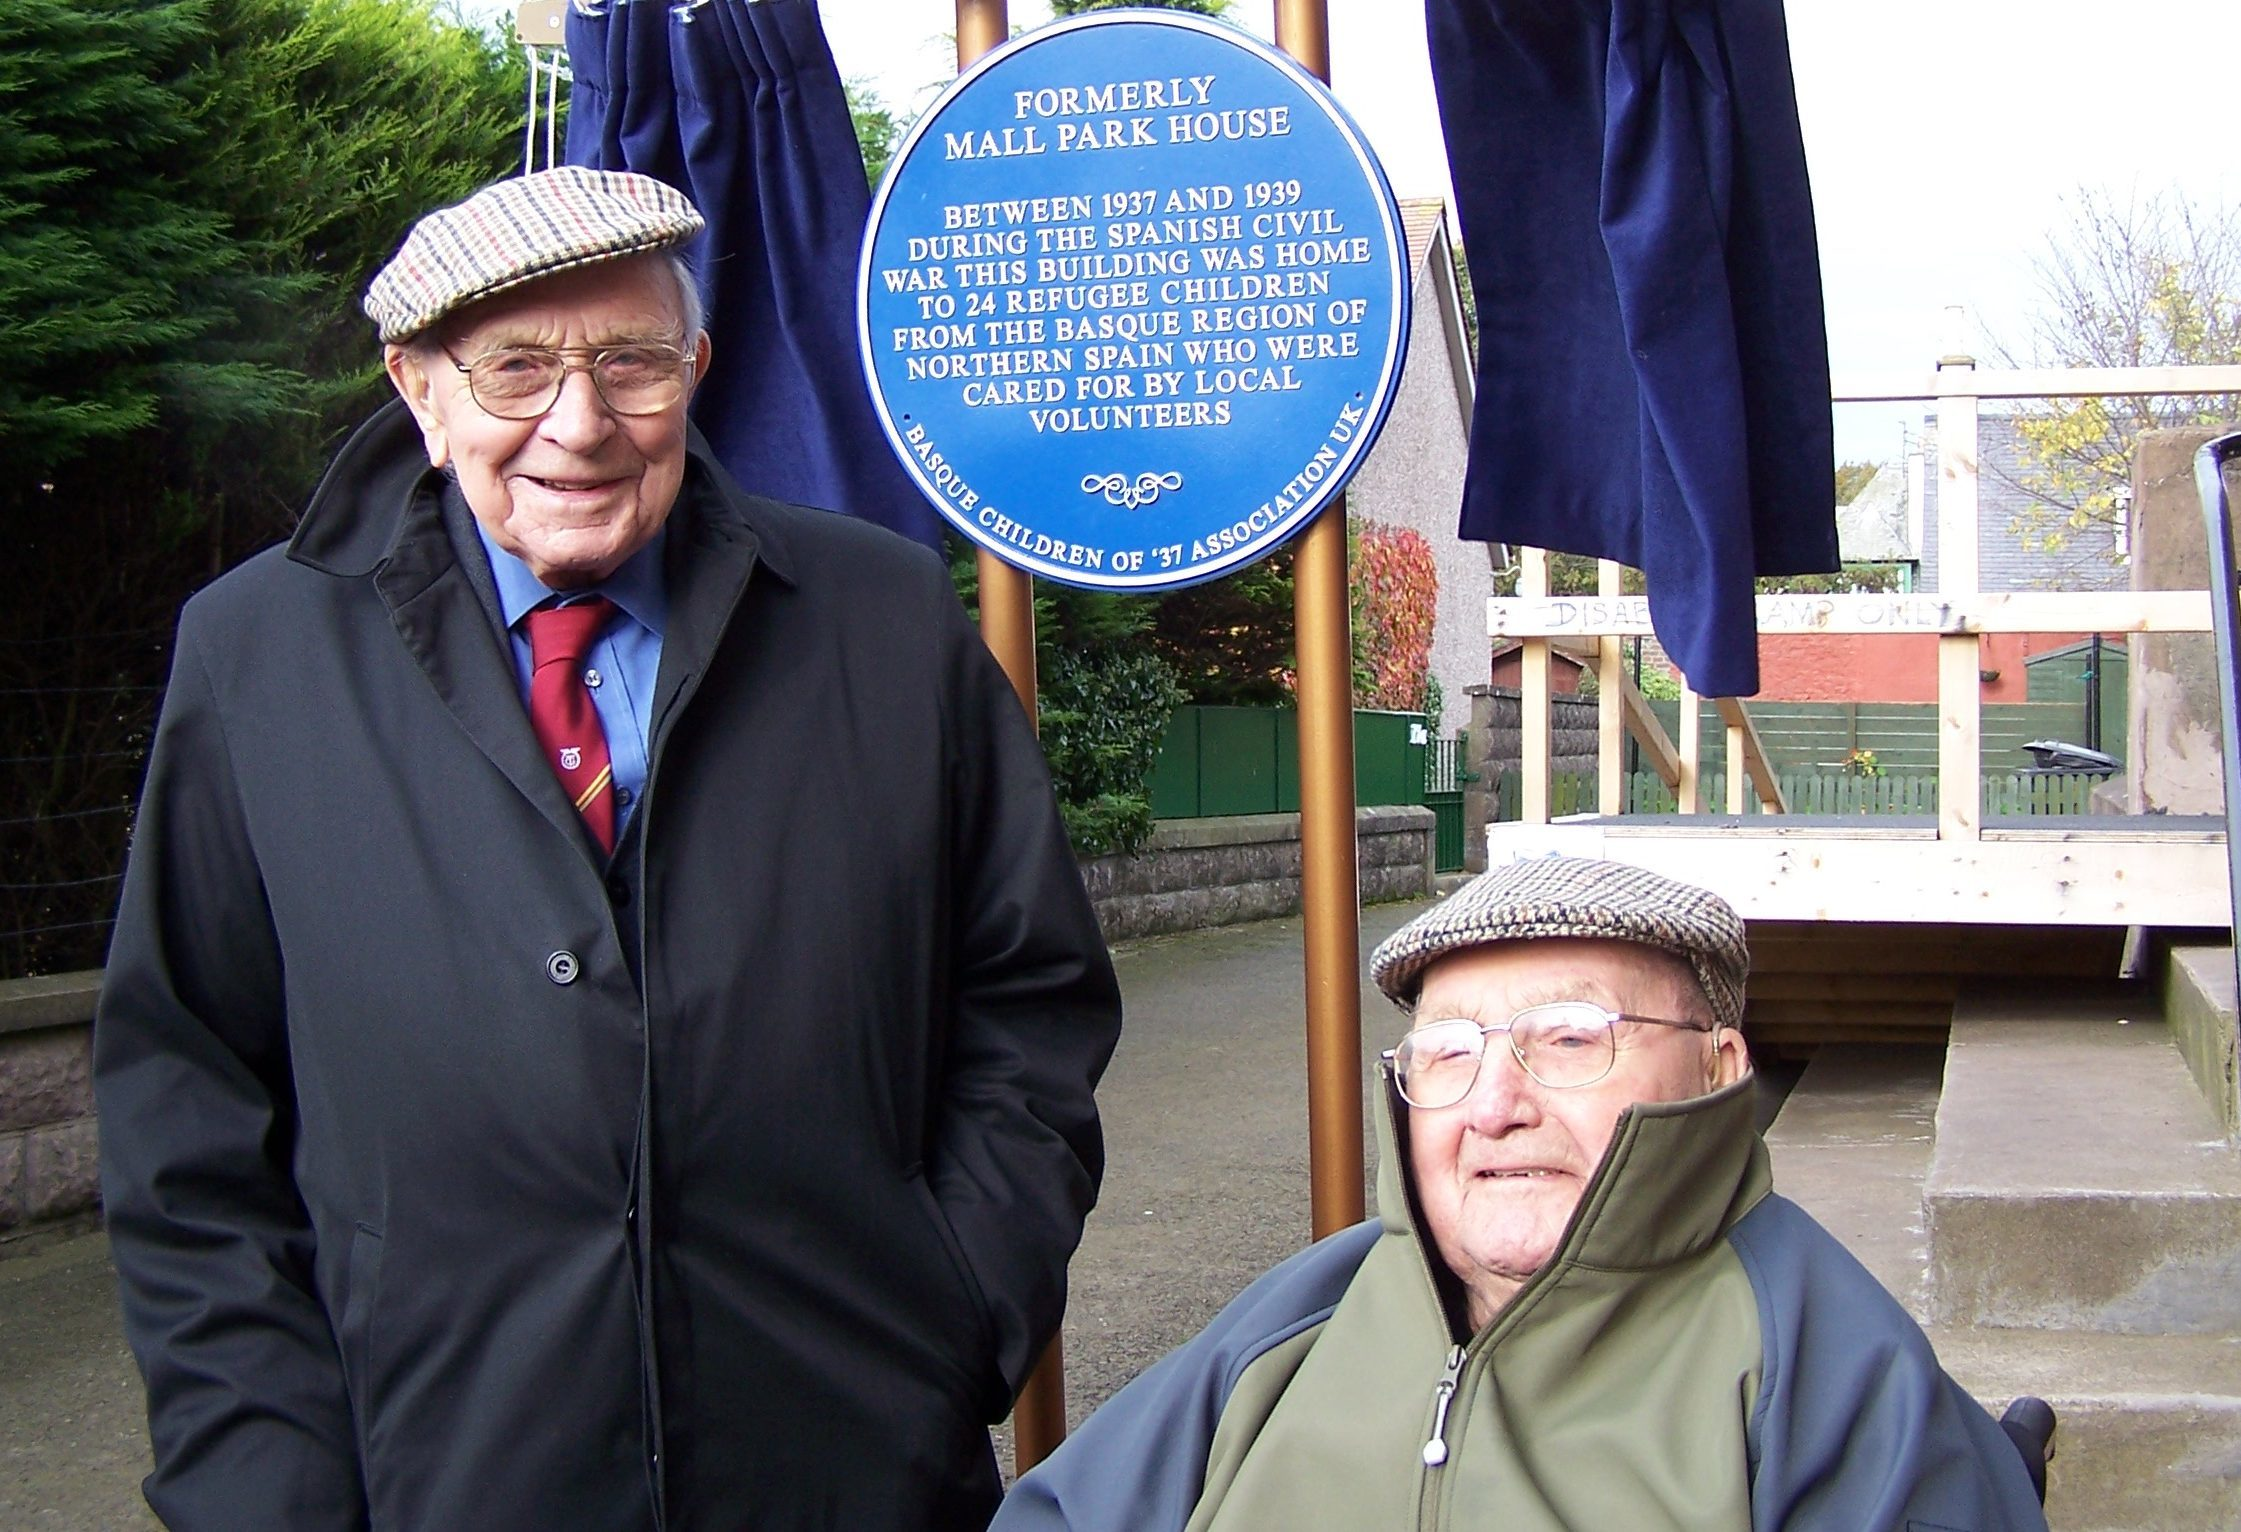 Taken at the unveiling of the commemorative plaque in Montrose in 2007. Picture shows (left) Jack Jones, the former general secretary of the Transport and General Workers Union, and volunteer at the time, Jack Edwards.